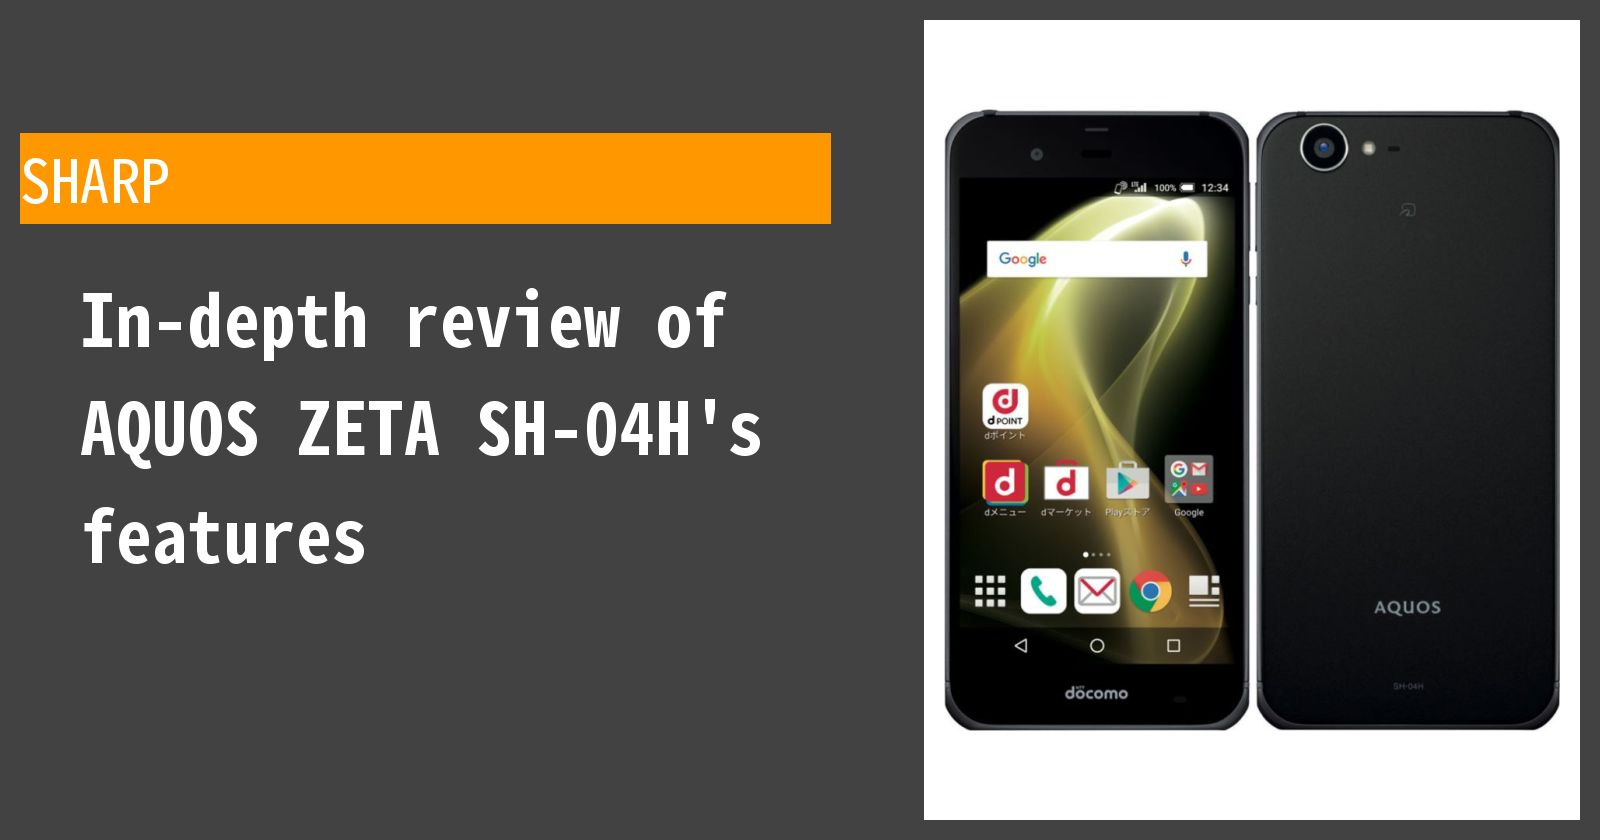 What are the advantages and disadvantages of AQUOS ZETA SH